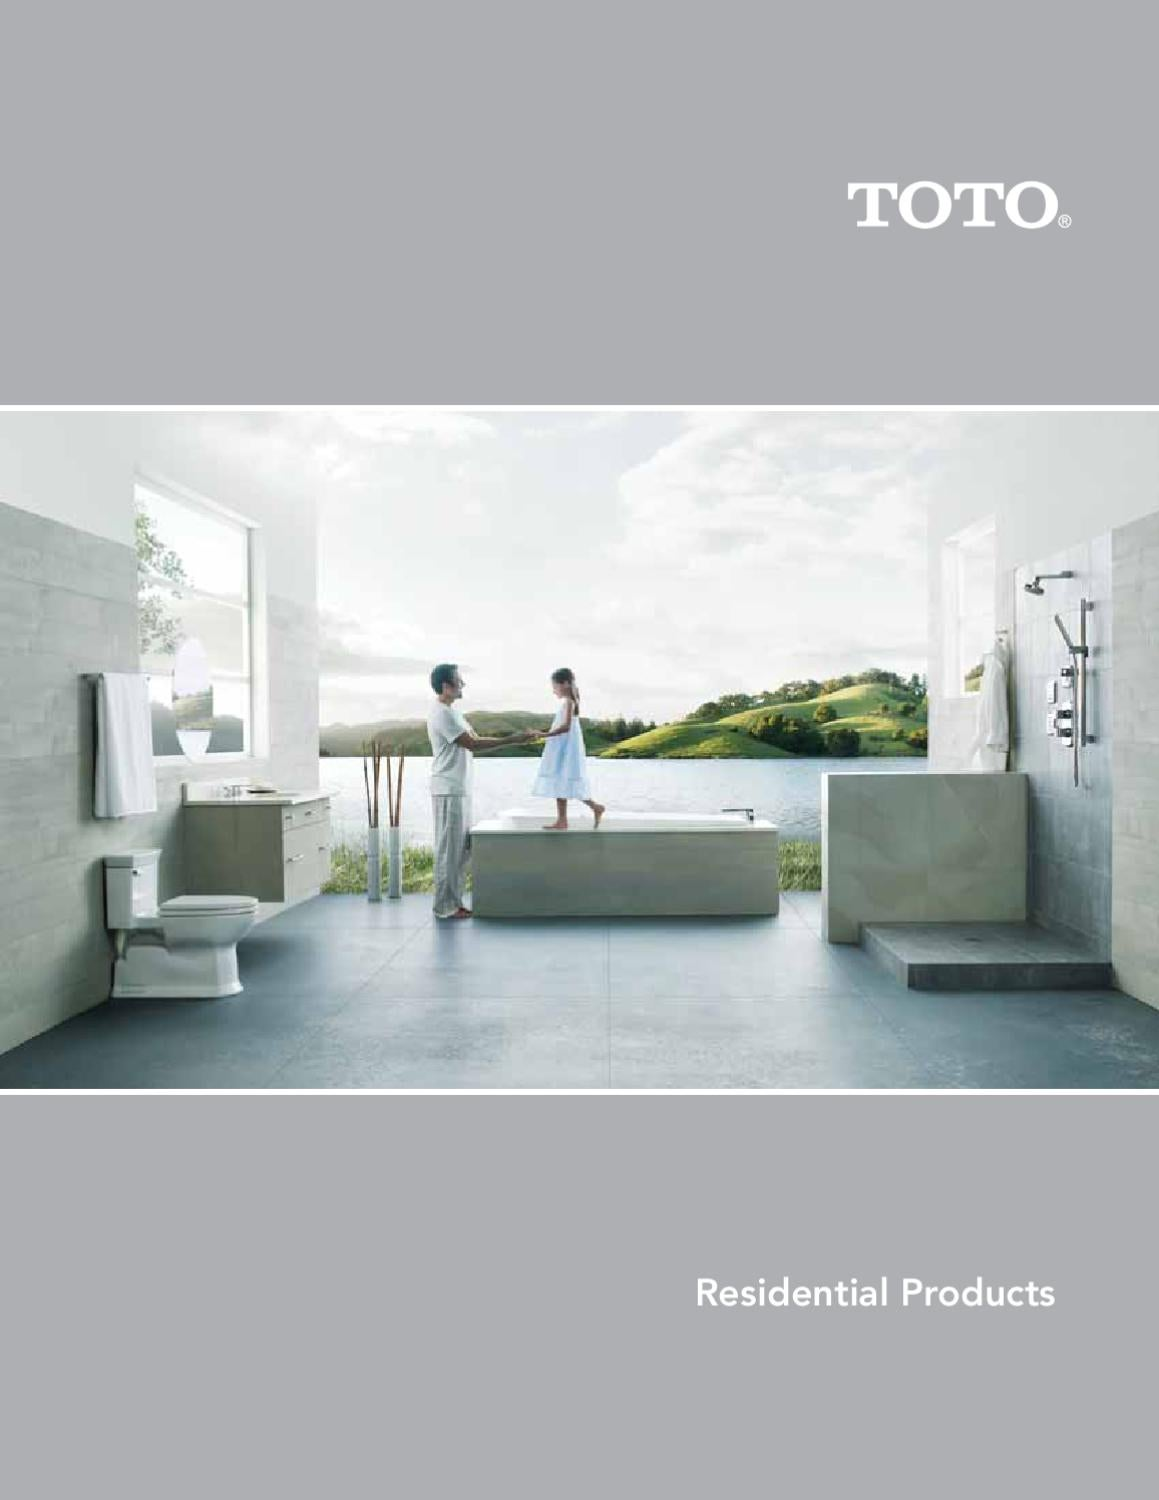 toto residencial by GUSTAVO Acosta - issuu